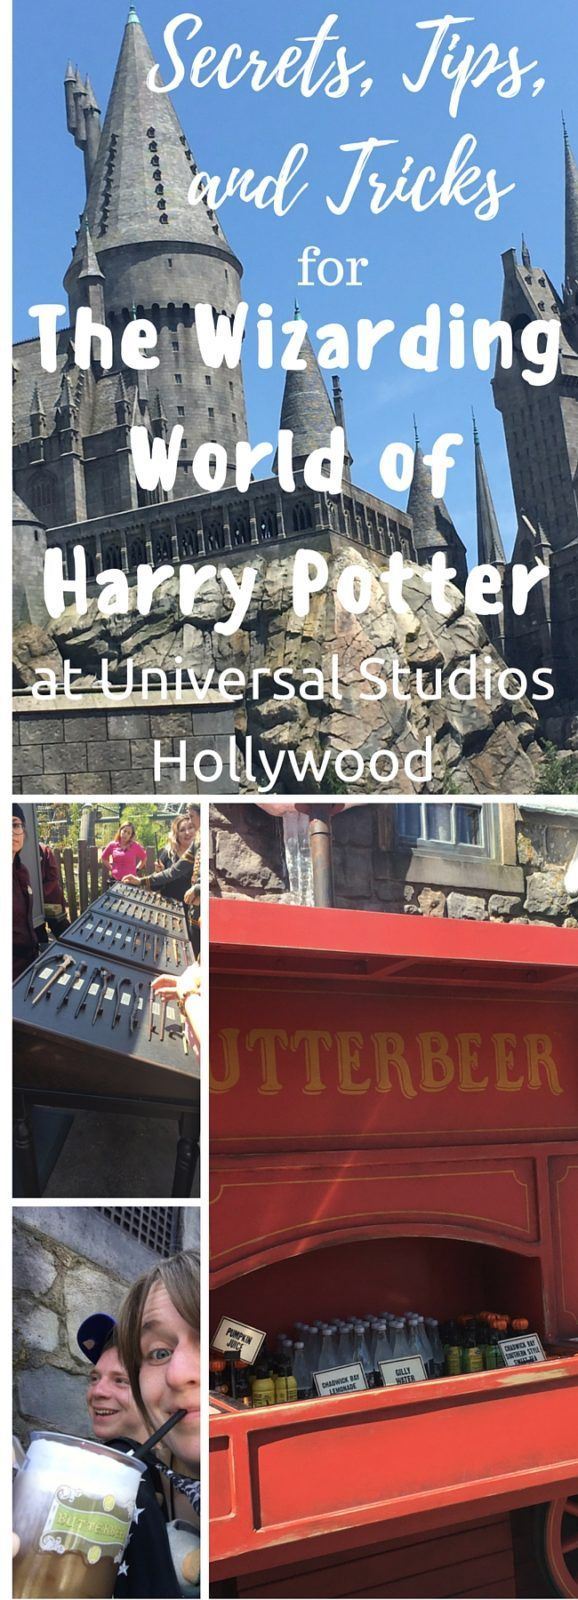 Secrets, Tips, and Tricks for visiting the Wizarding World of Harry Potter in Universal Studios Hollywood.